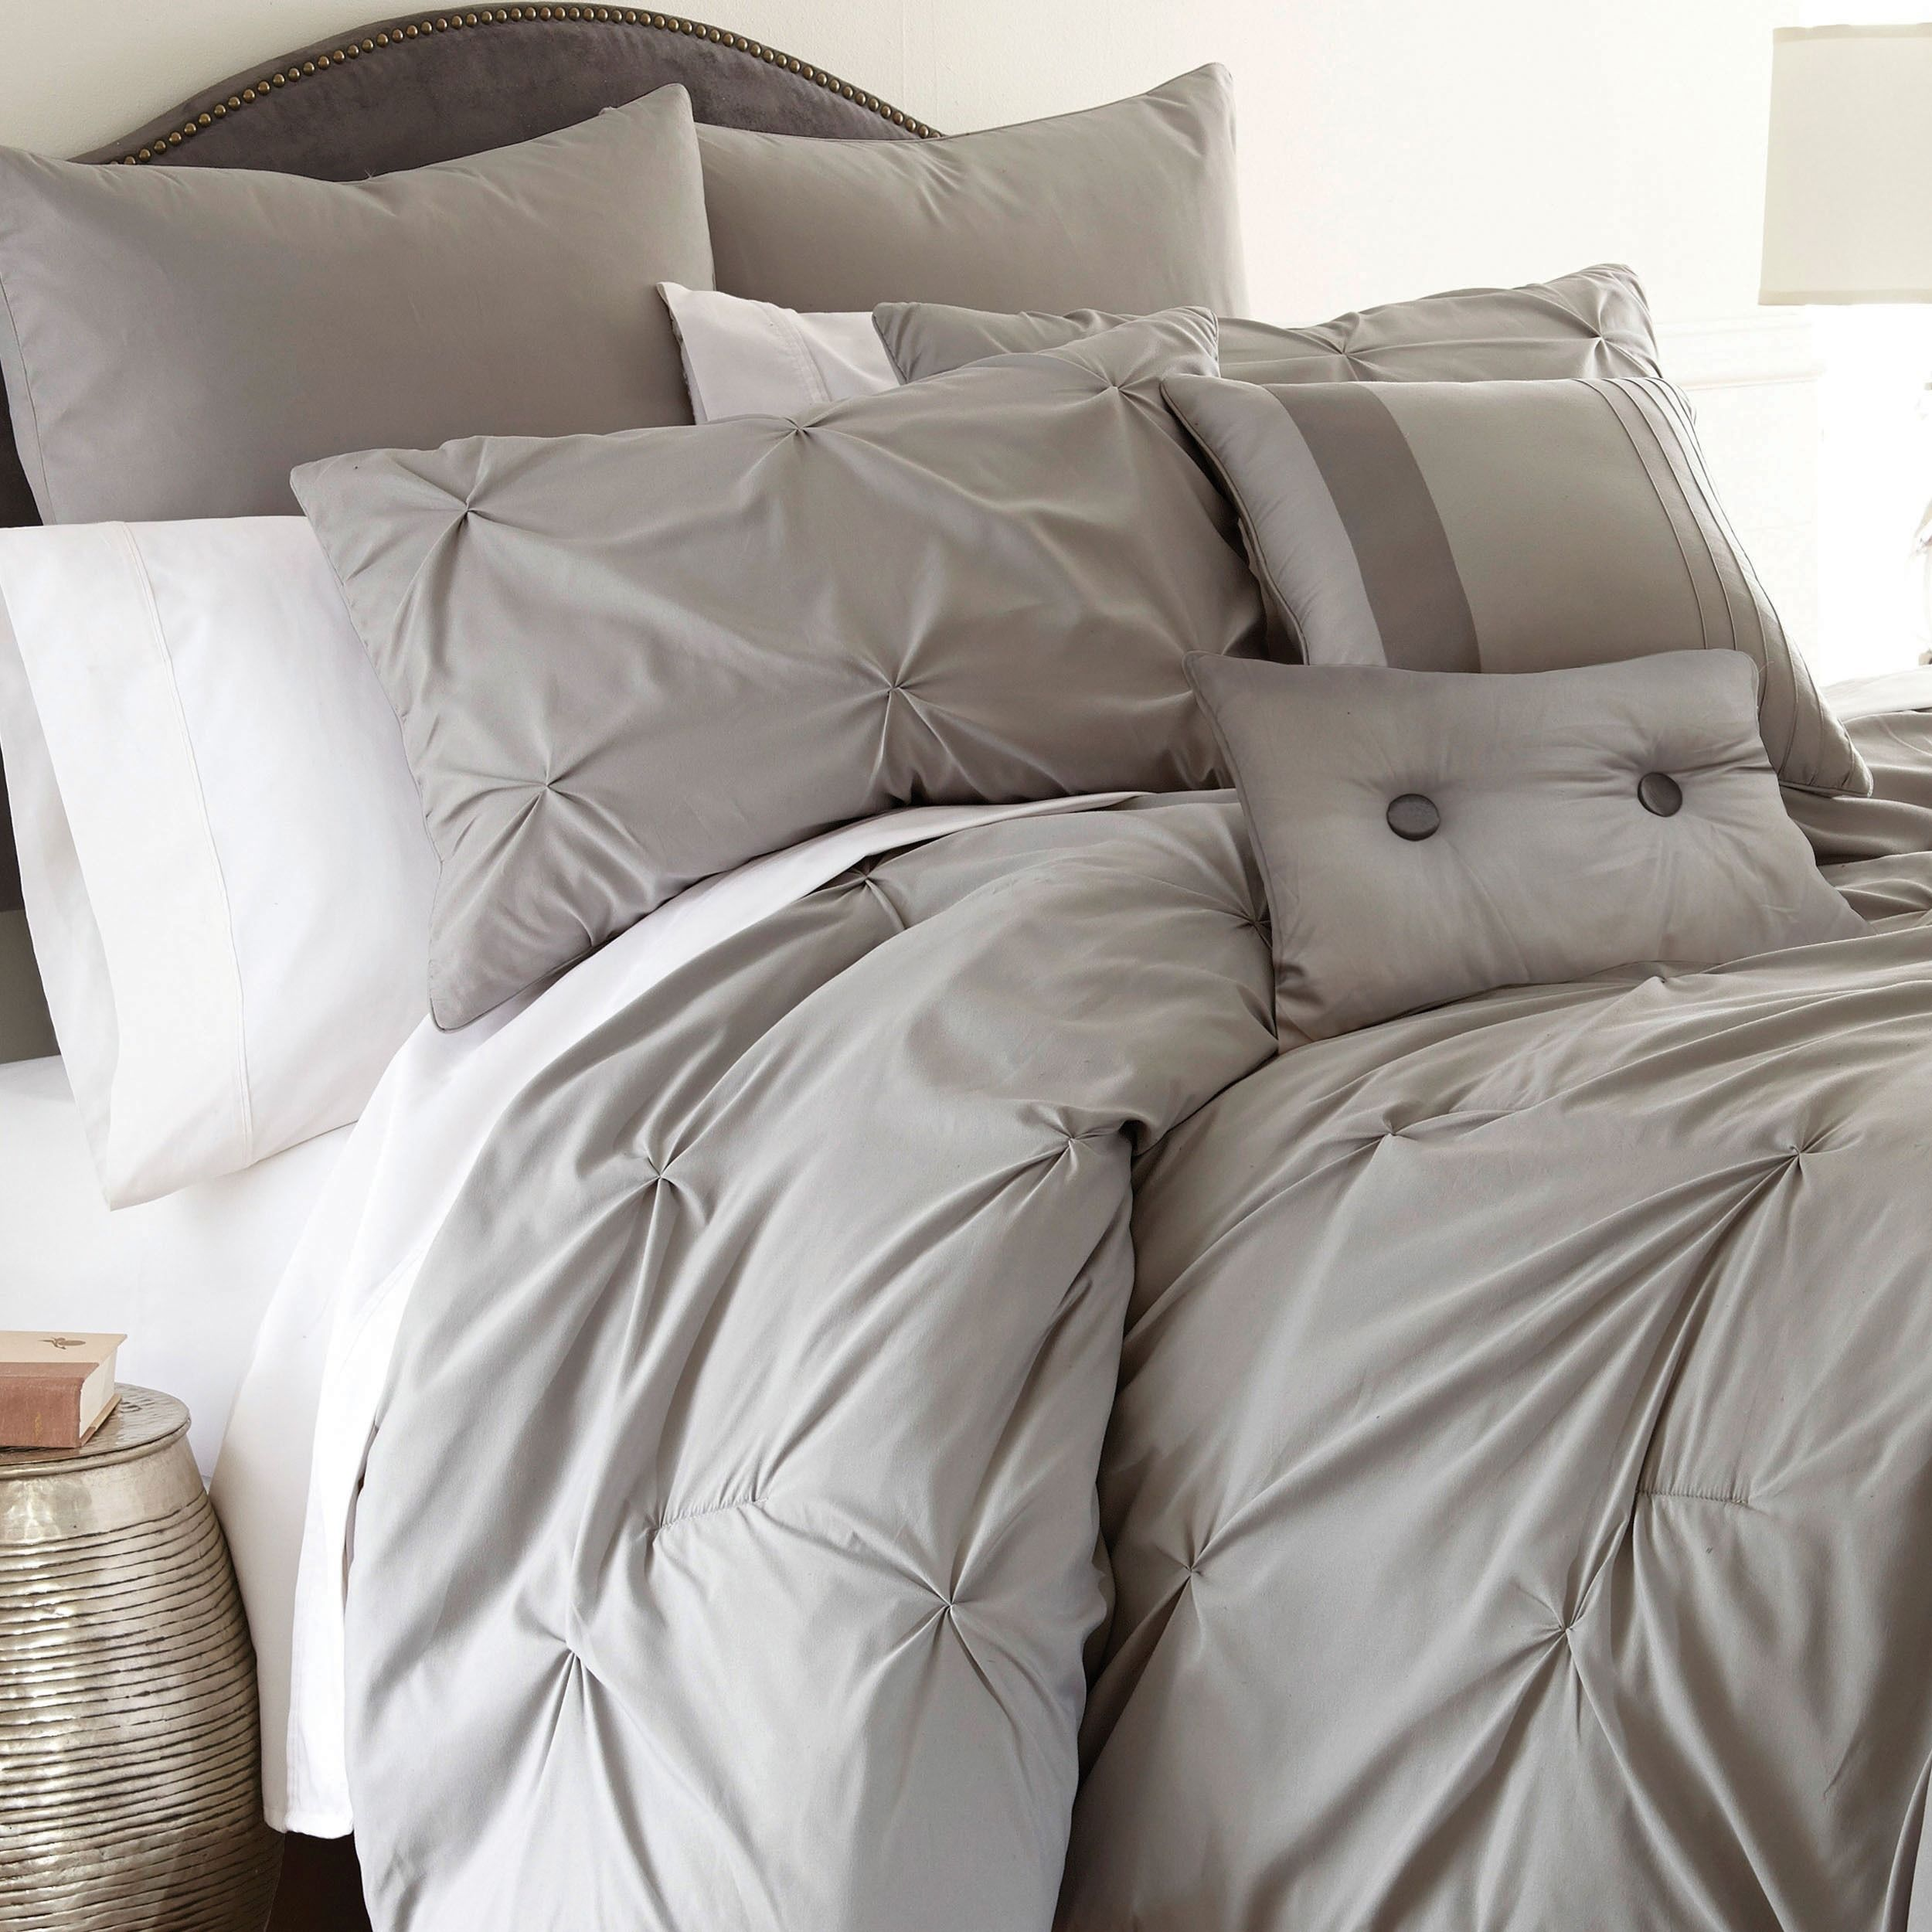 Best 25 luxury comforter sets ideas on pinterest red - Bedroom sheets and comforter sets ...